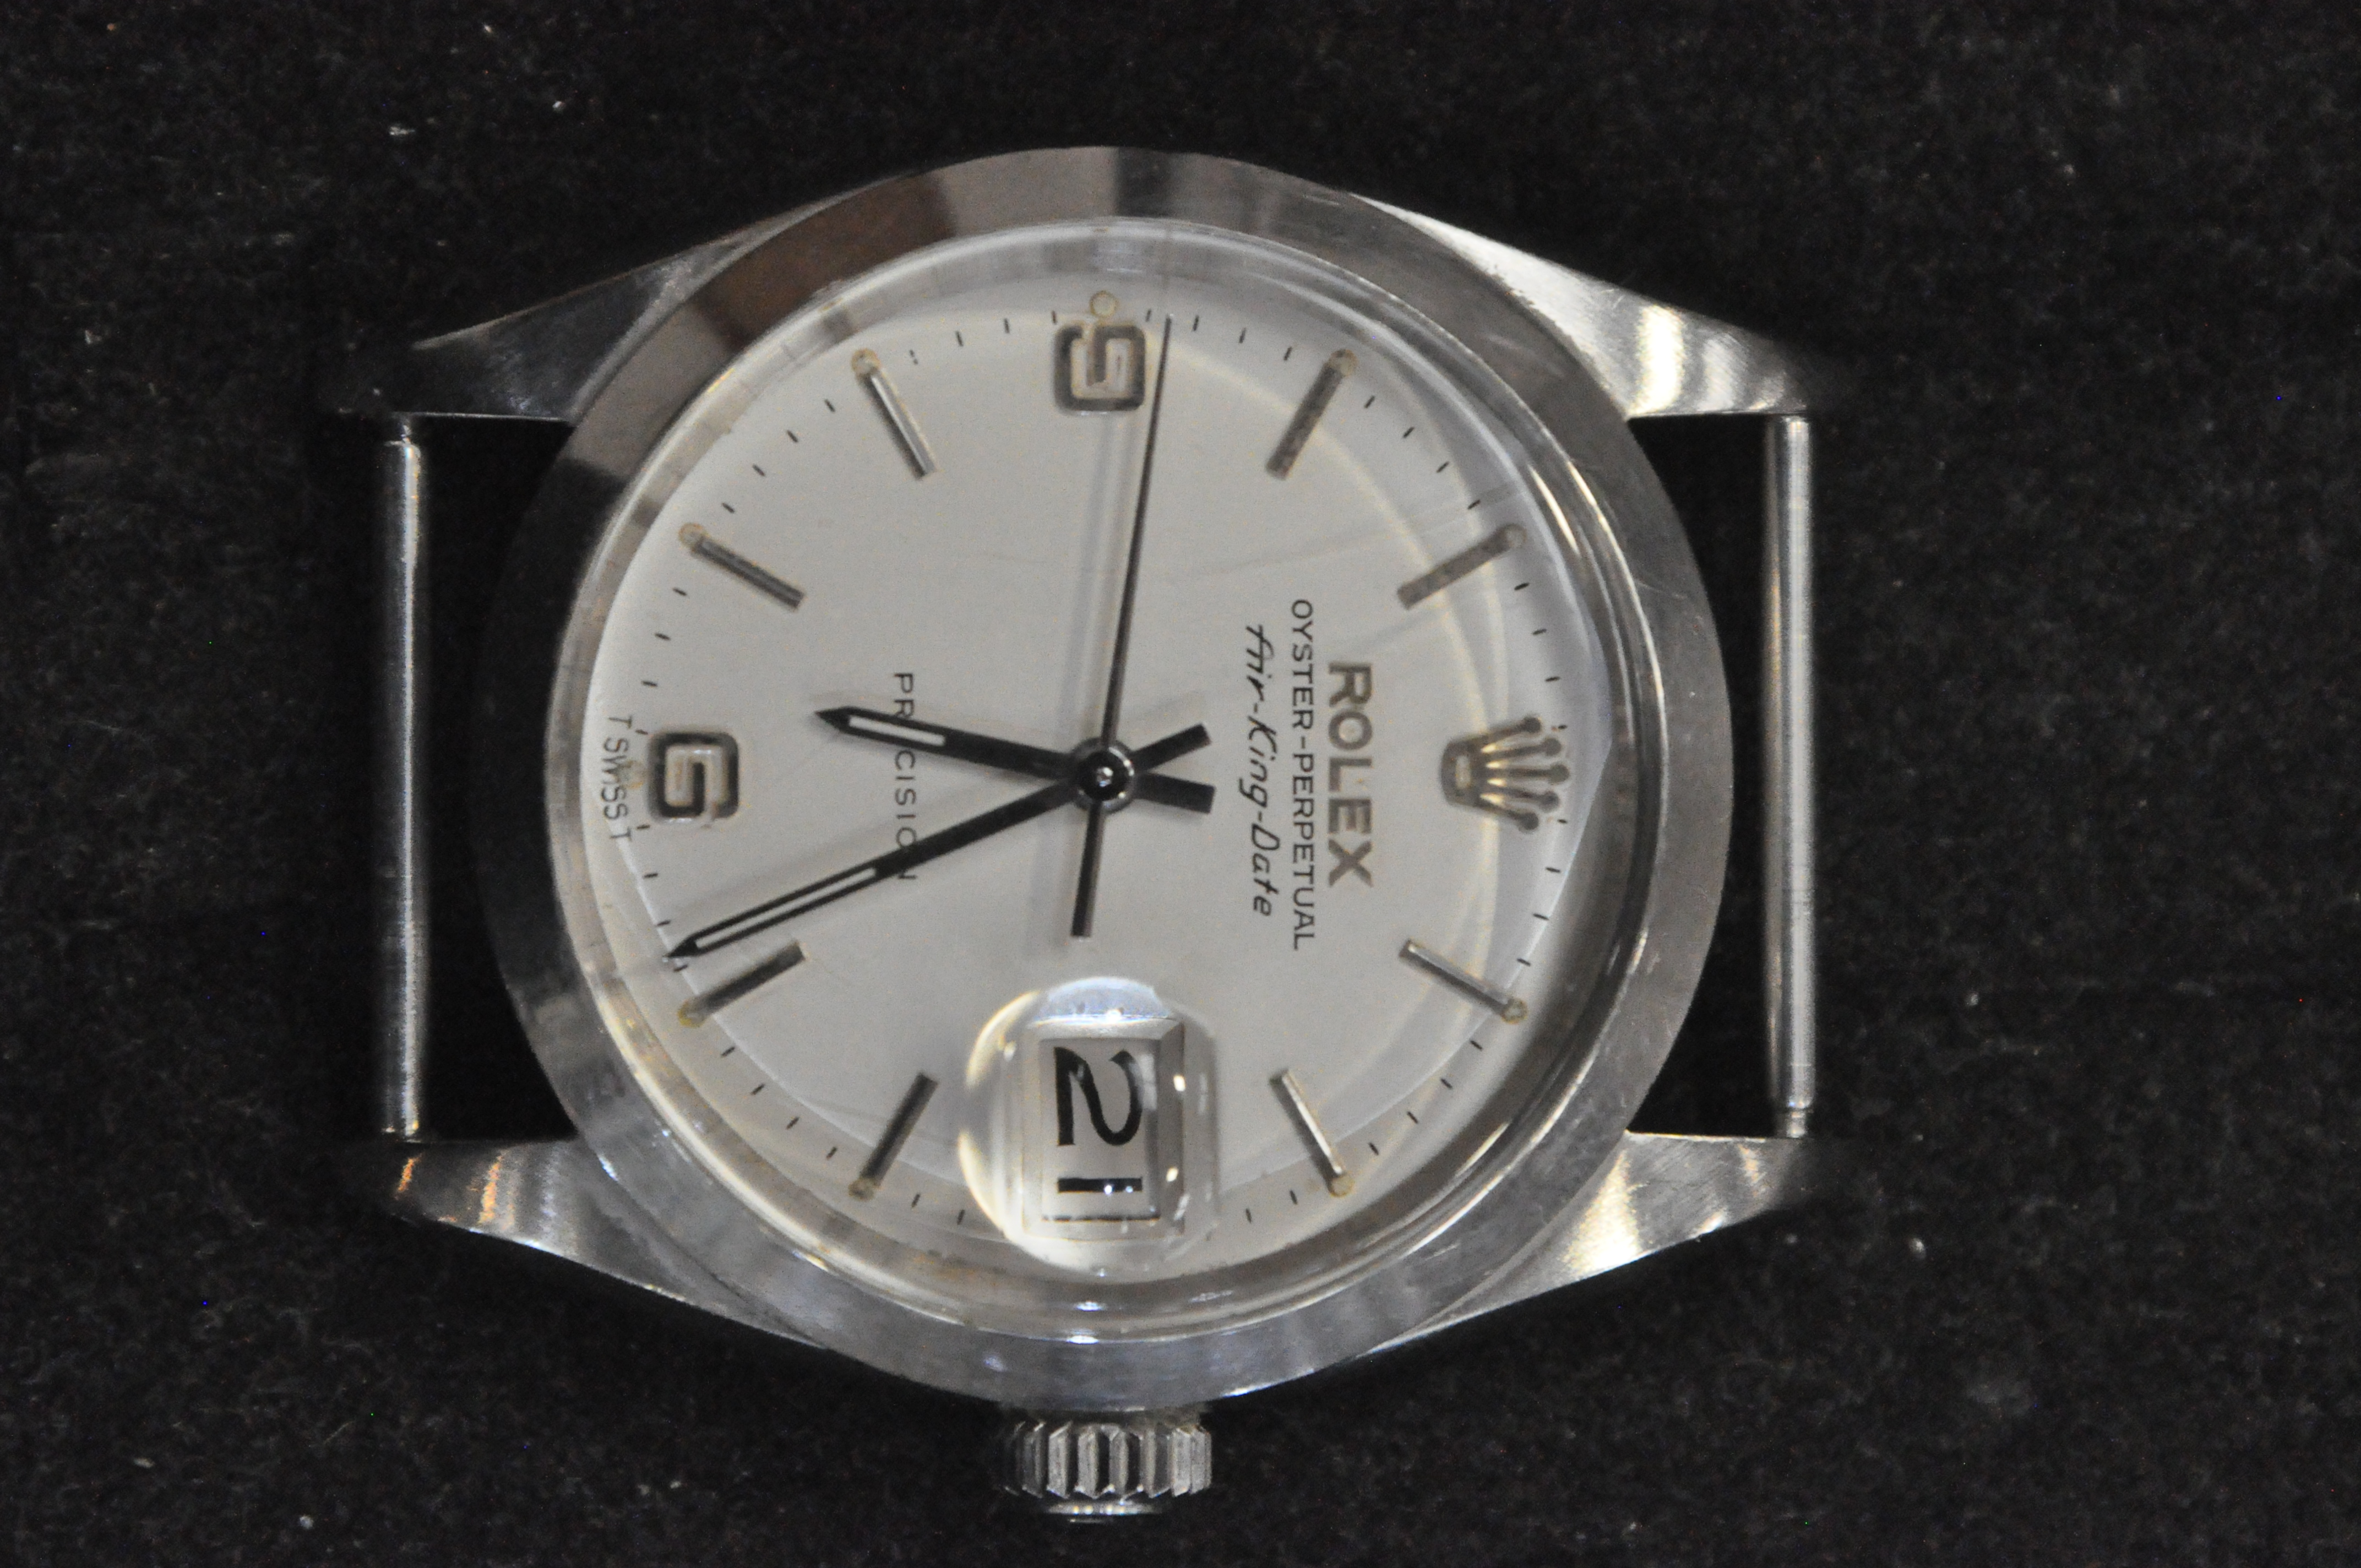 A stainless steel rolex oyster perpetual air king date wristwatch. - Image 8 of 11